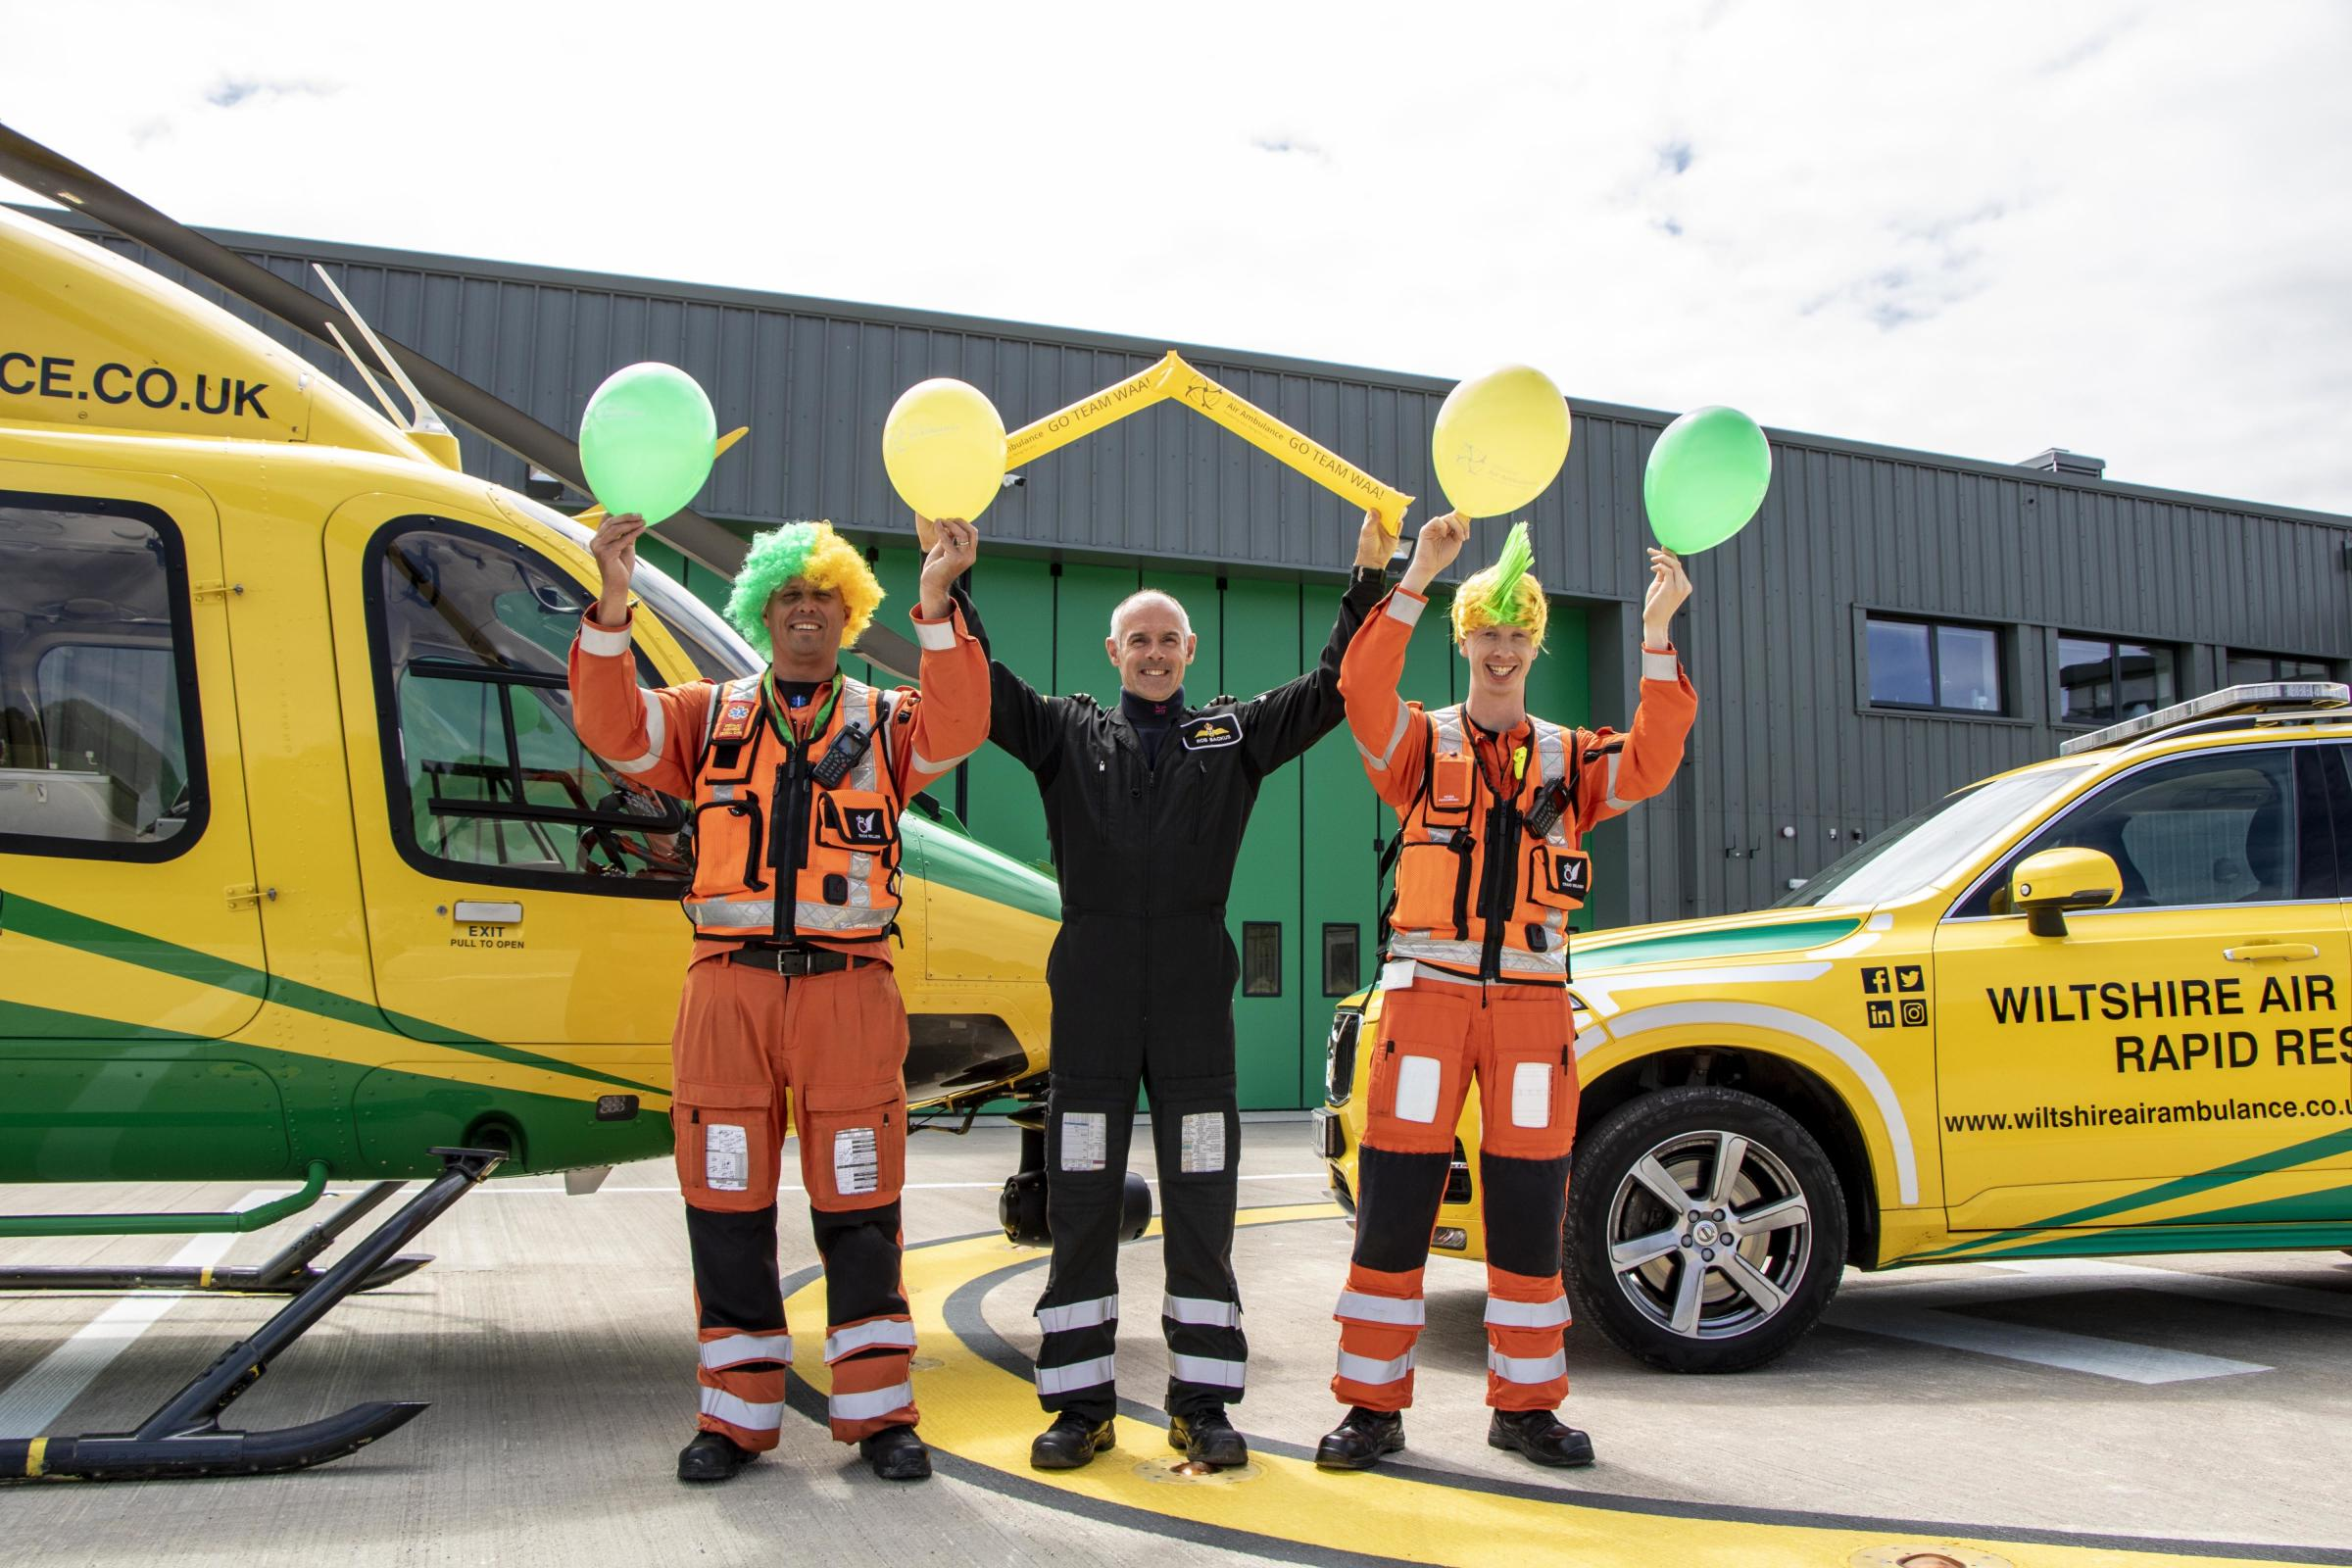 Turn Swindon yellow and green and support Wiltshire Air Ambulance